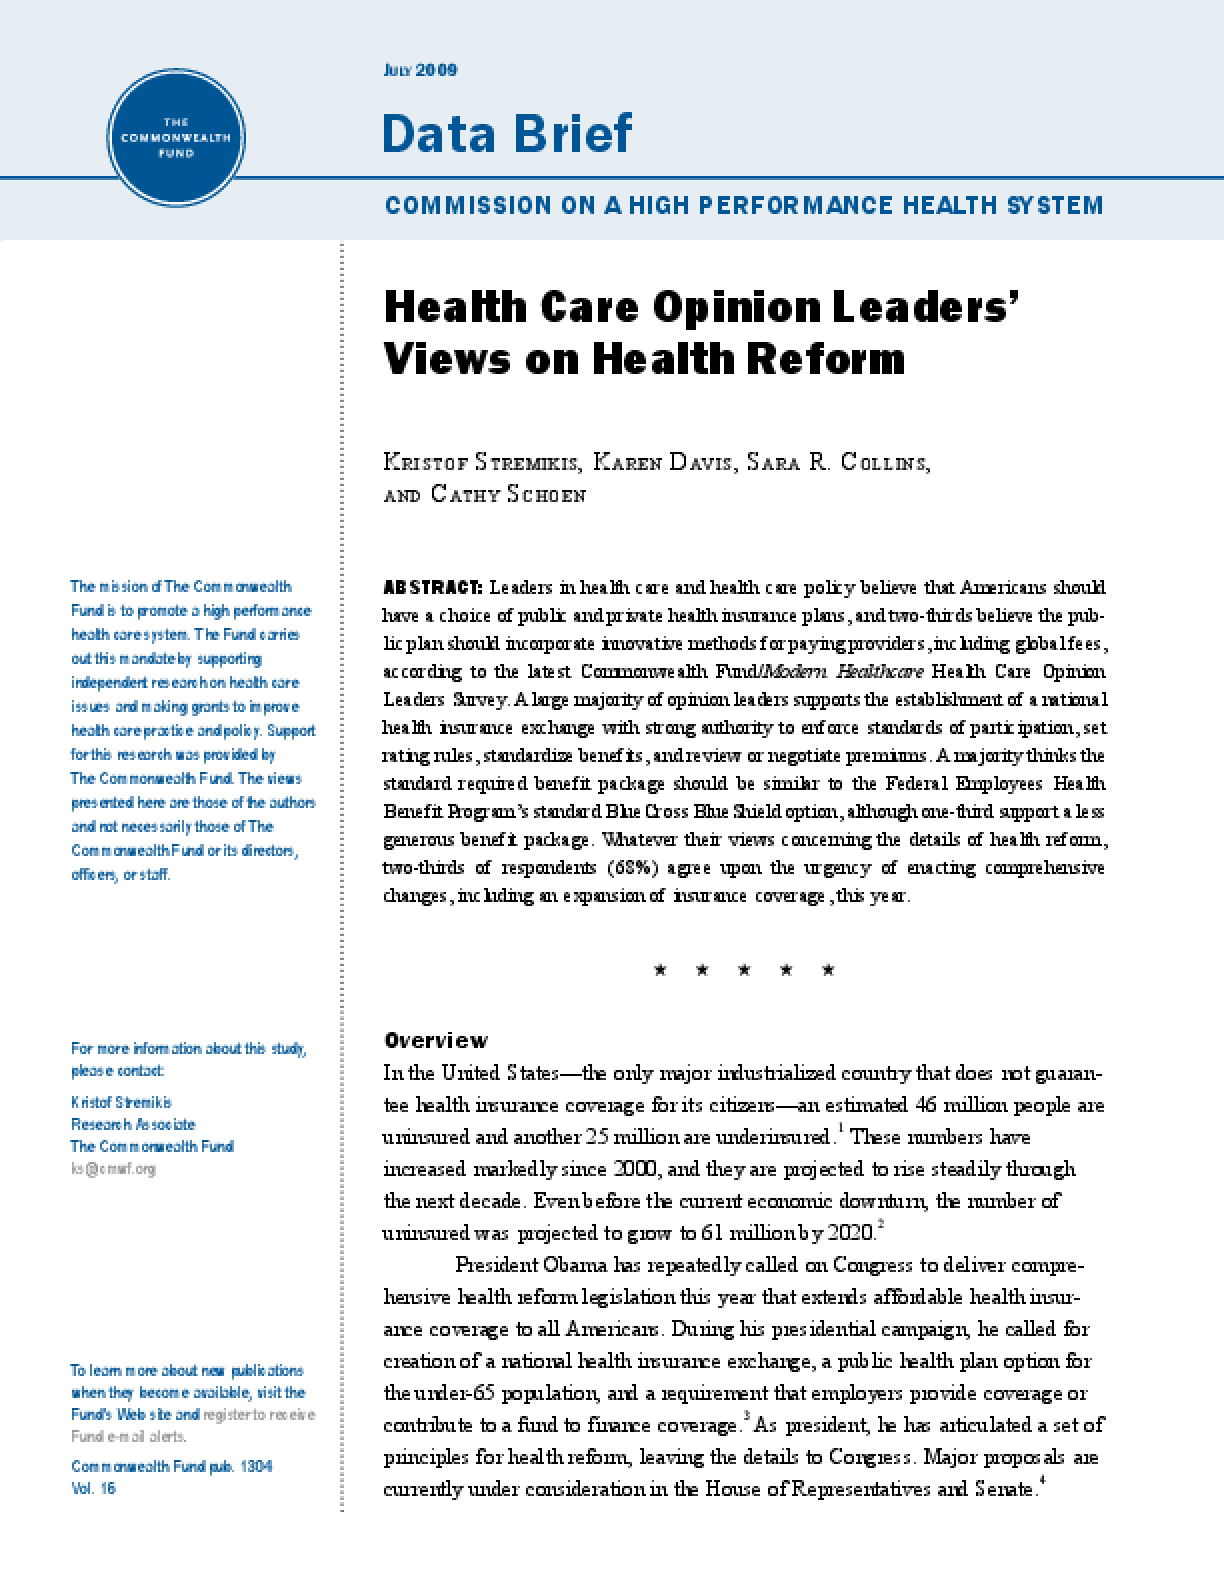 Health Care Opinion Leaders' Views on Health Reform